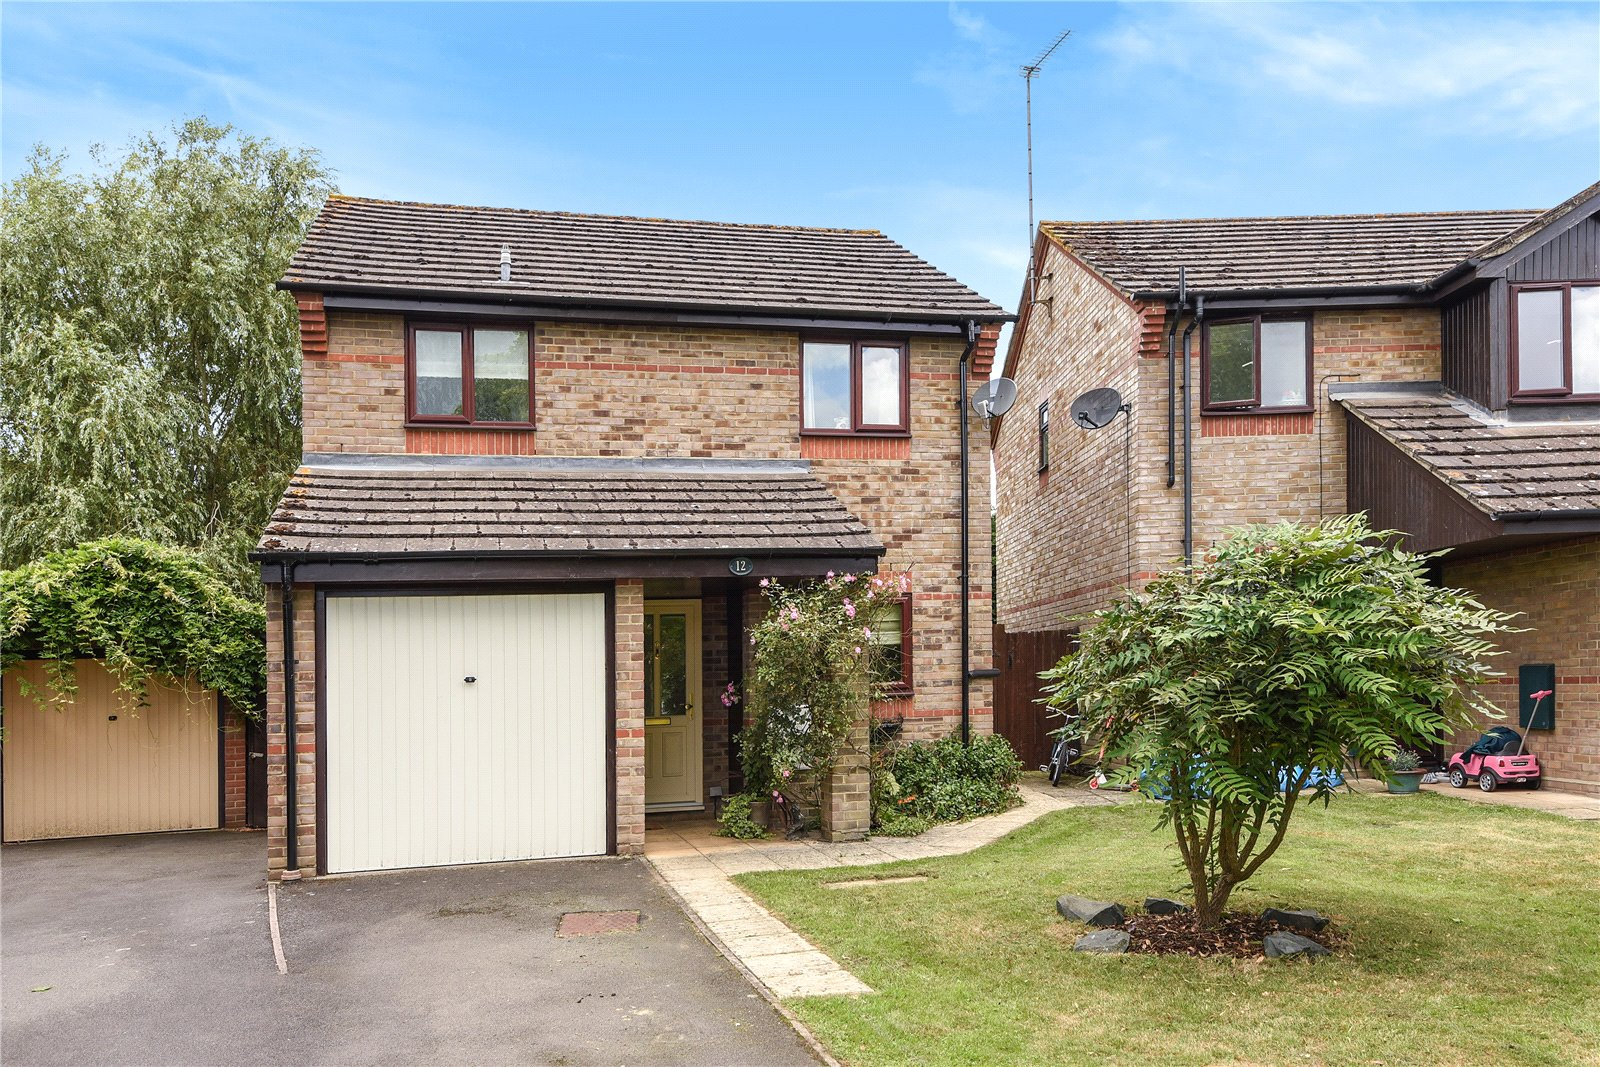 3 Bedrooms Detached House for sale in Riverdene Drive, Winnersh, Wokingham, Berkshire, RG41